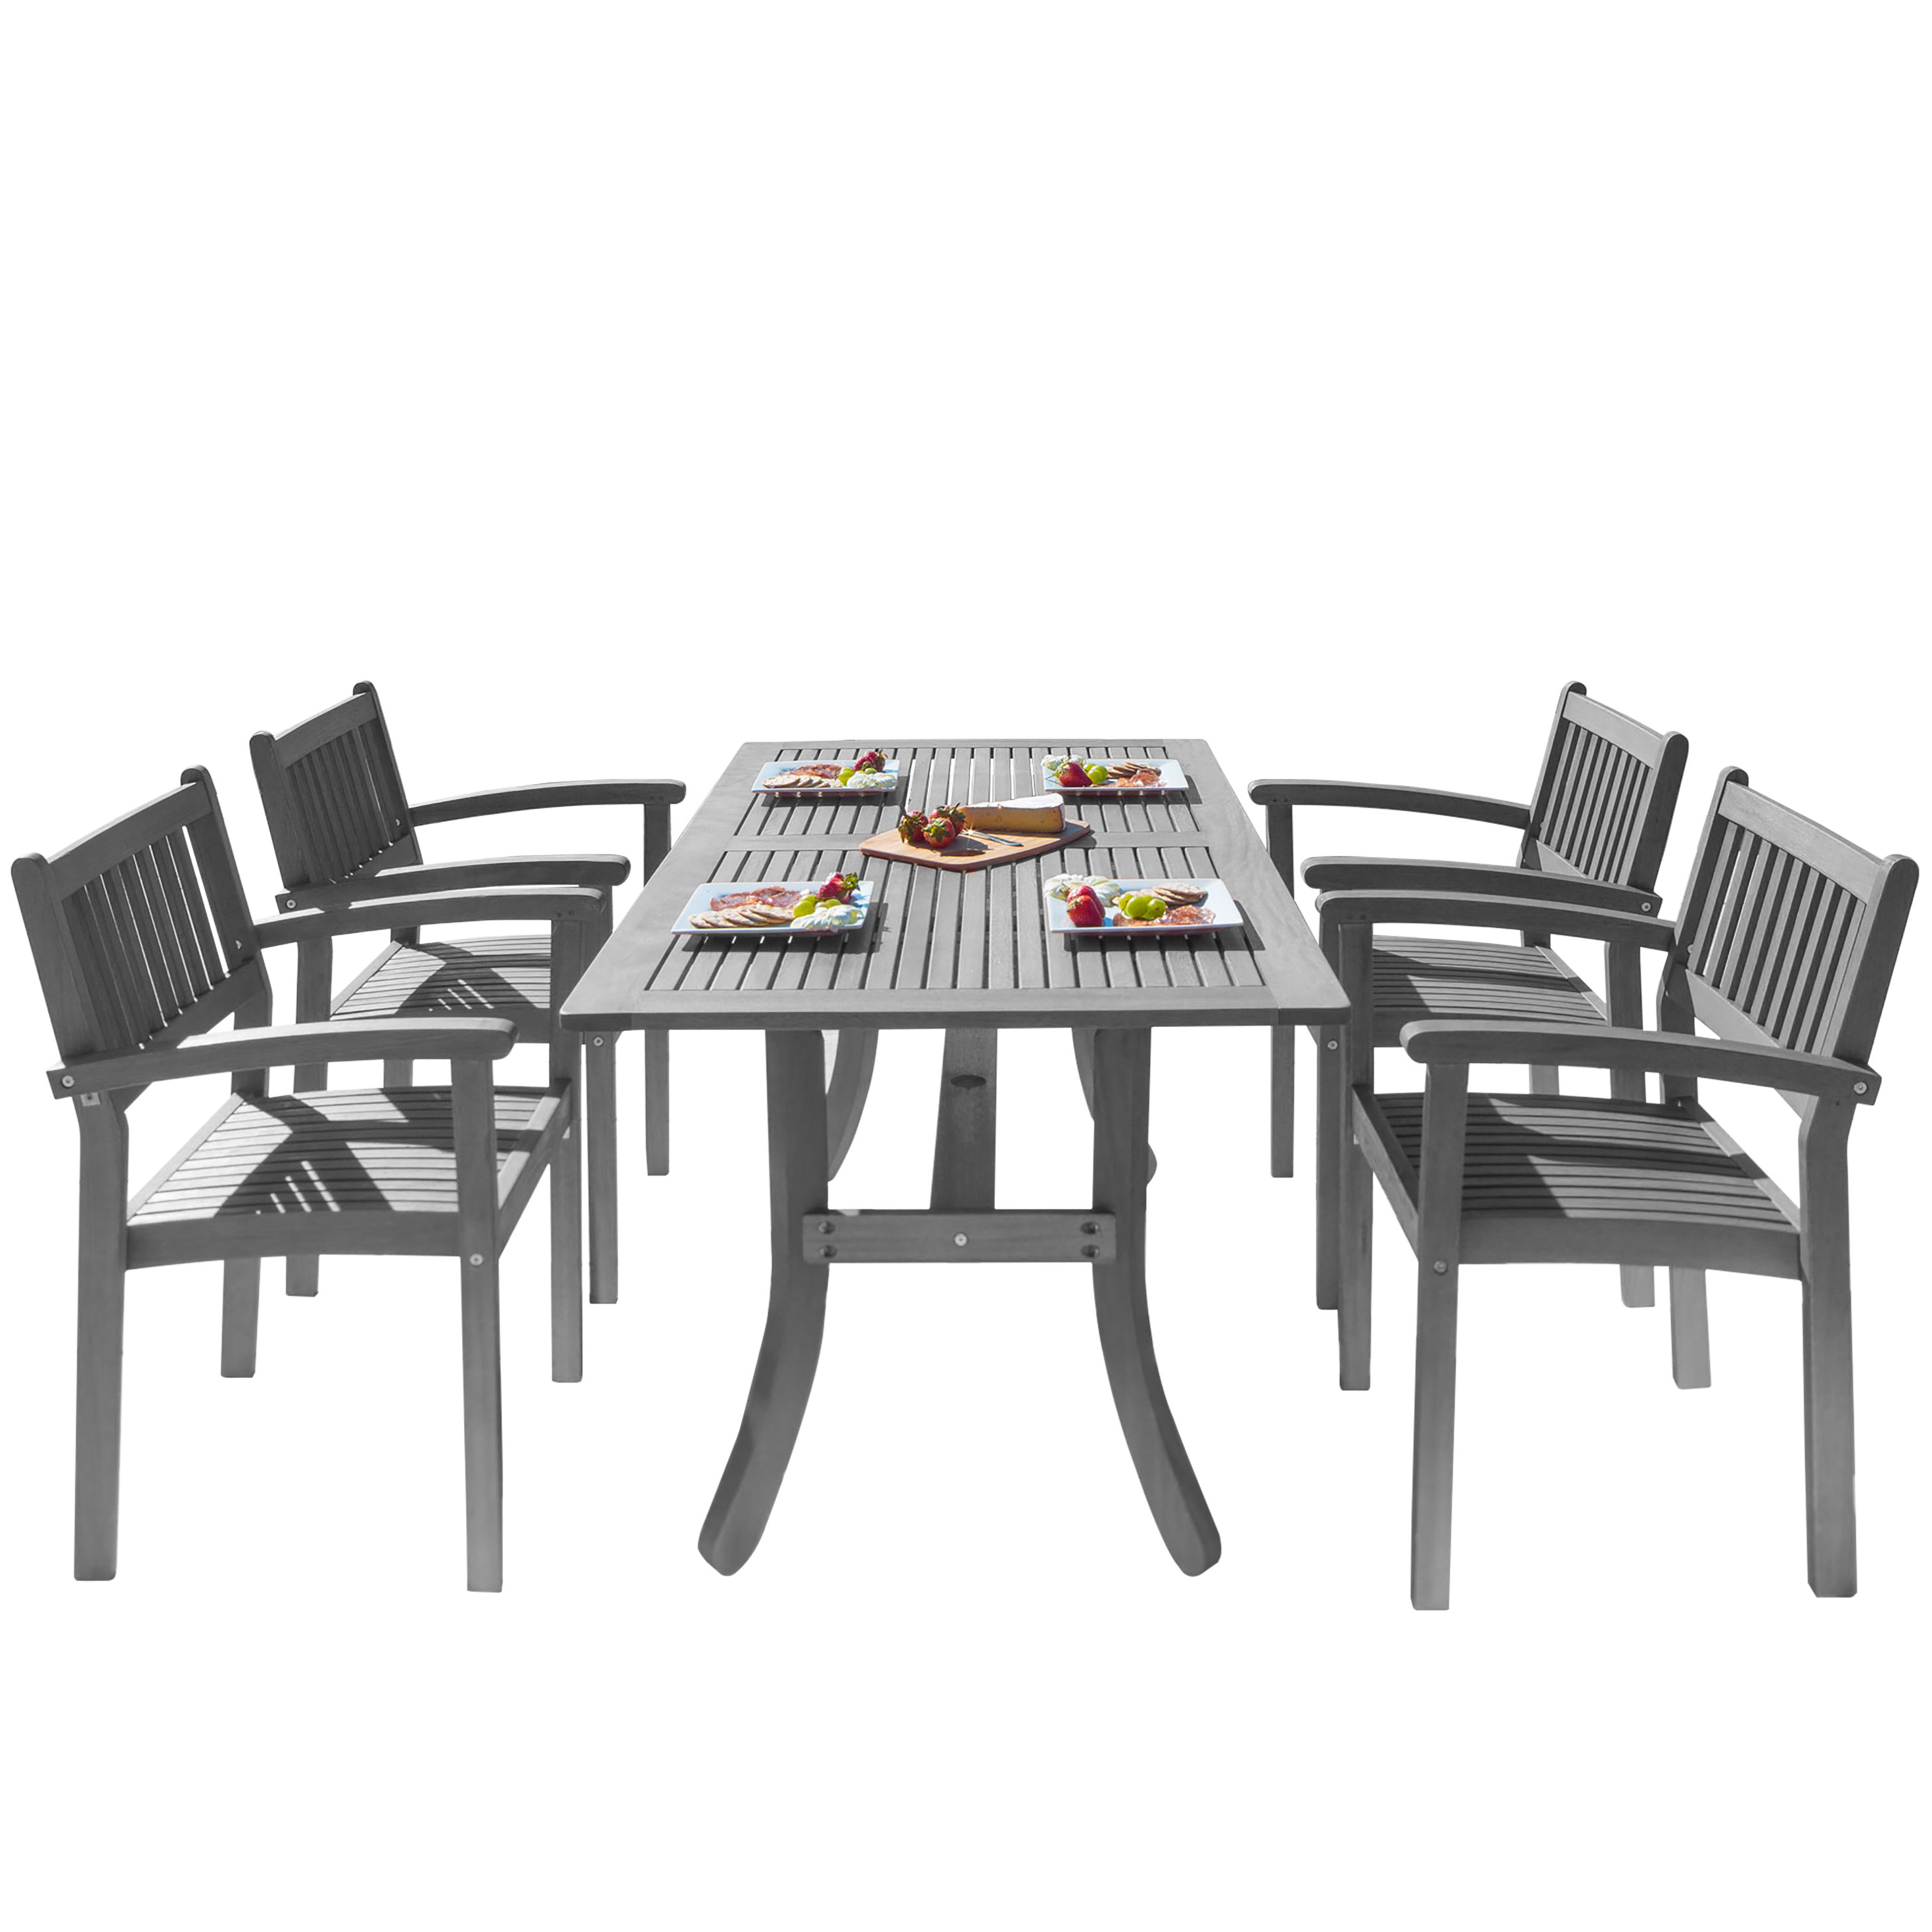 Rossi 5 Piece Dining Sets With Regard To Popular Gracie Oaks Southport 5 Piece Dining Set (View 3 of 20)